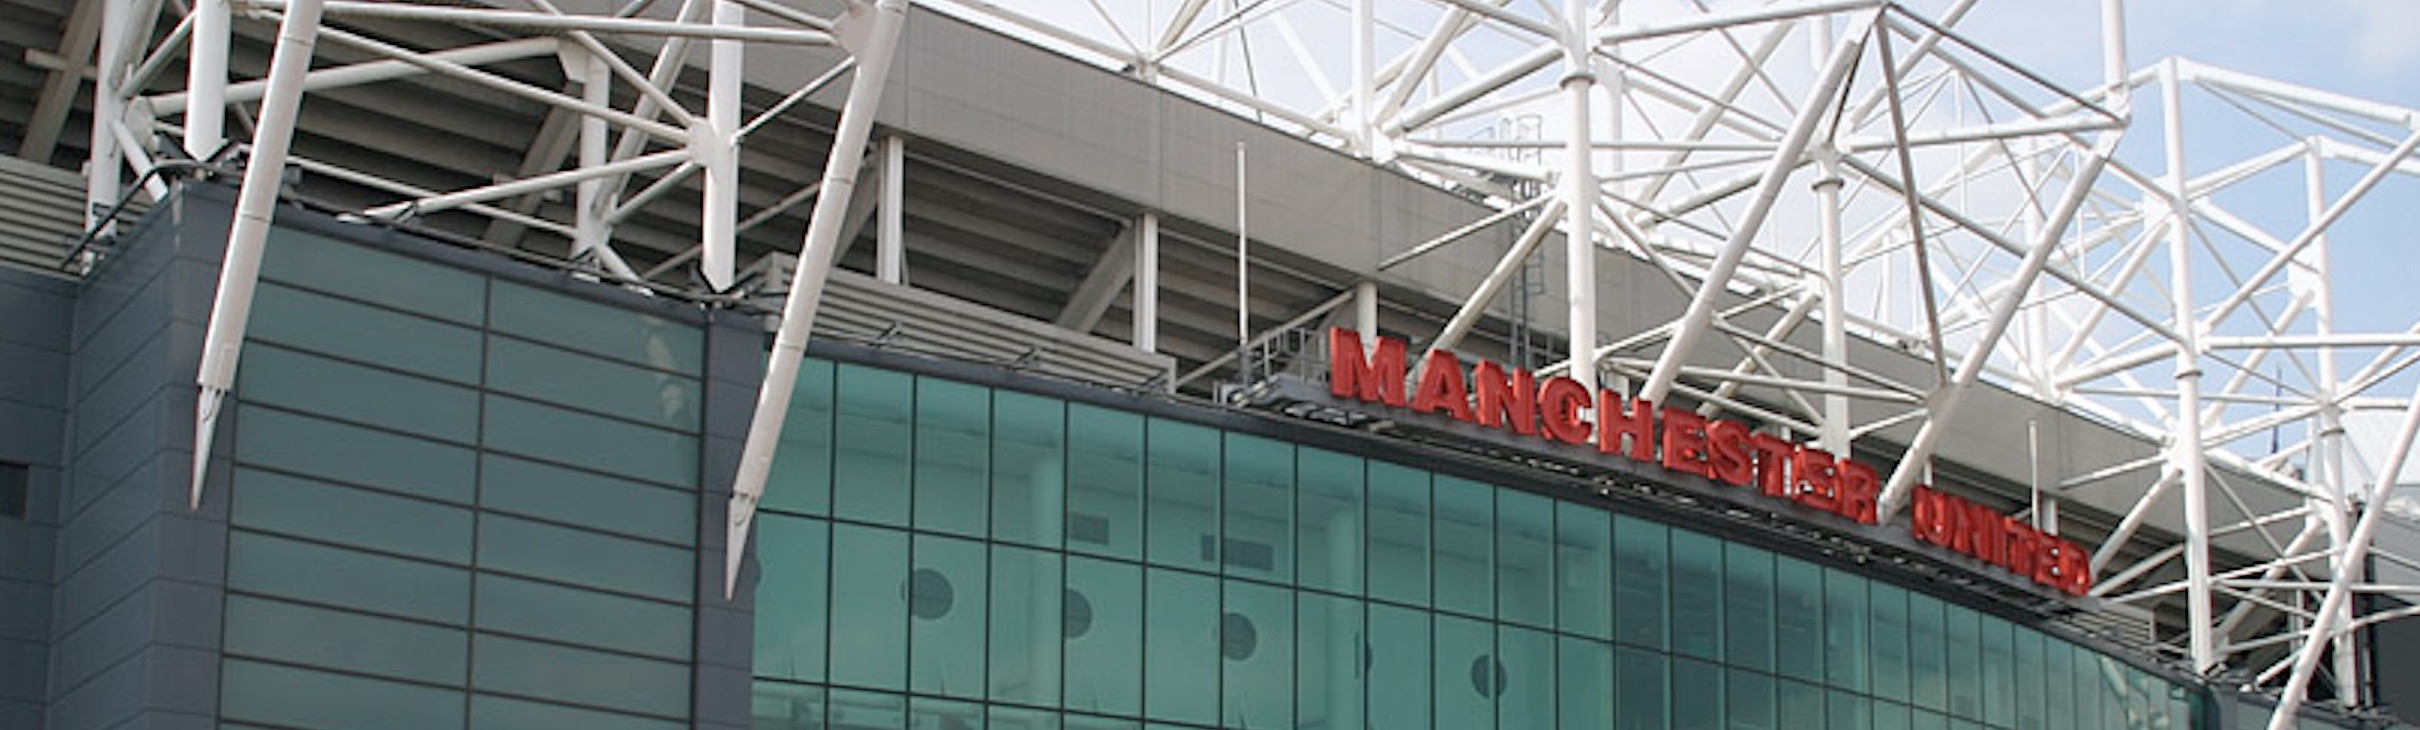 Man United V Man City - Saturday Night Stay